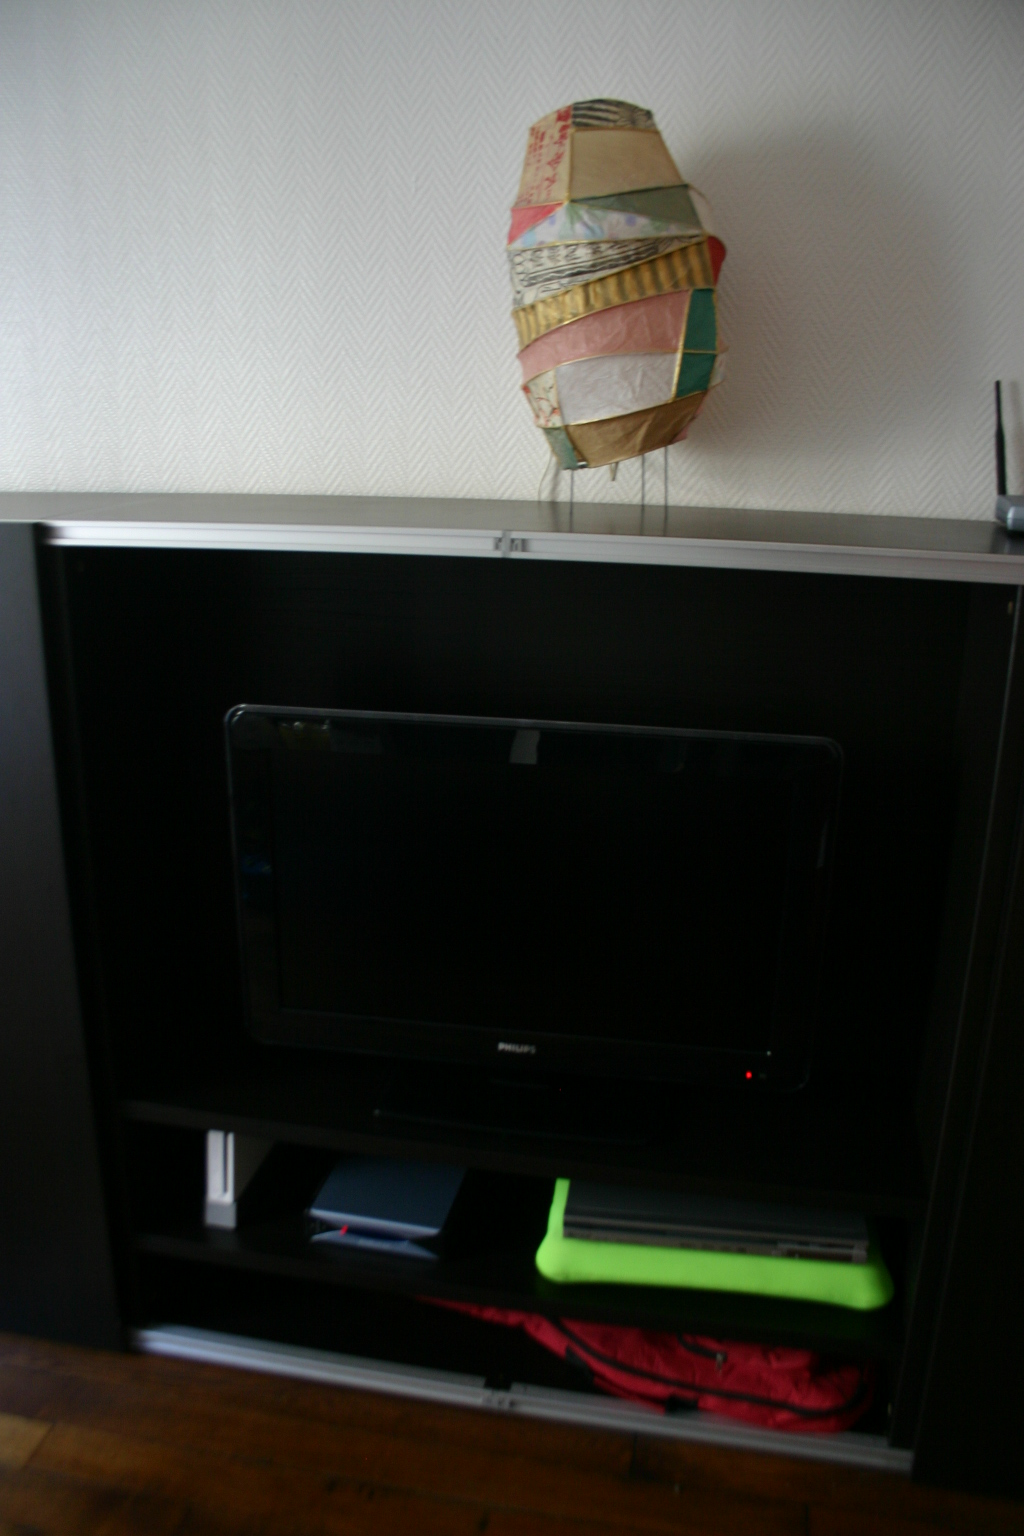 Tablette Besta La Brocante Du 75019 Besta Rangement Mueble Tv